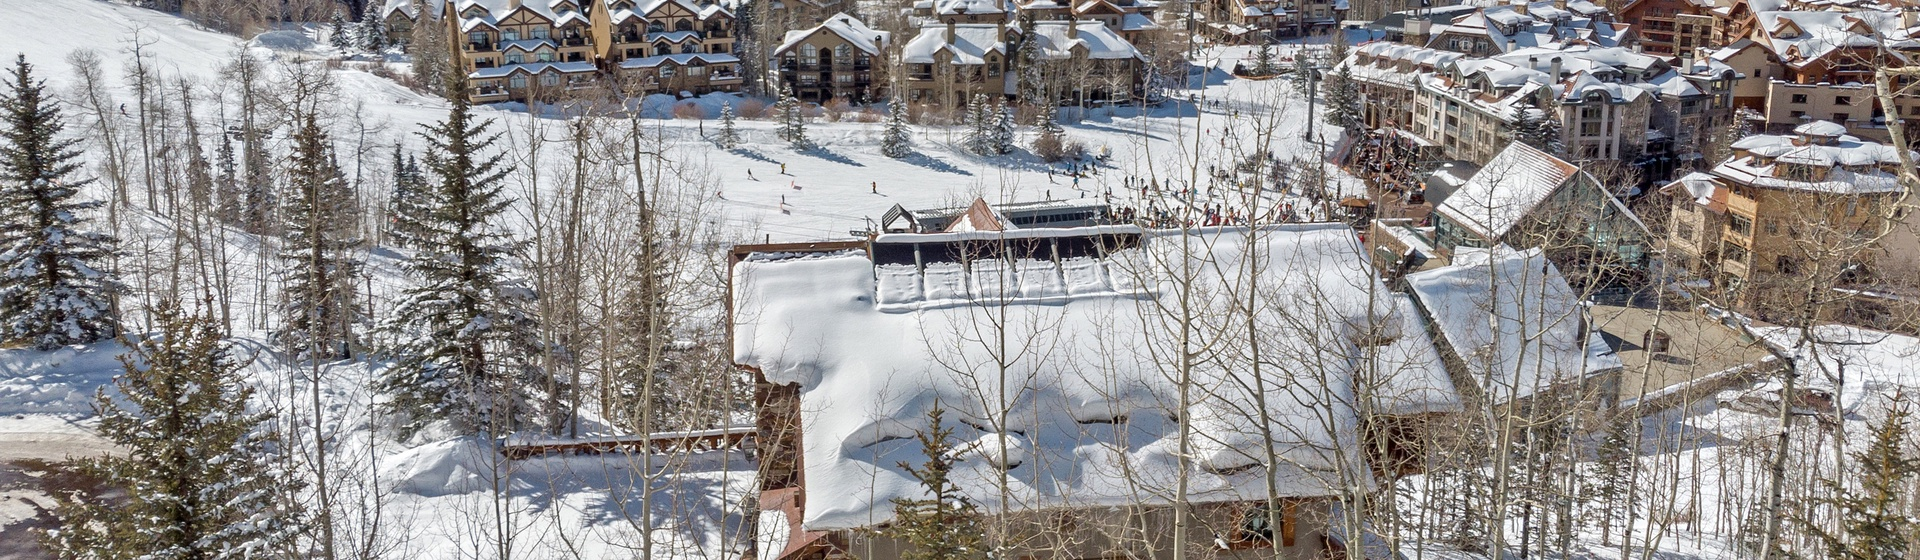 40-MountainVillage-Positive-Outlook-Side-Exterior-Aerial-Web.jpg